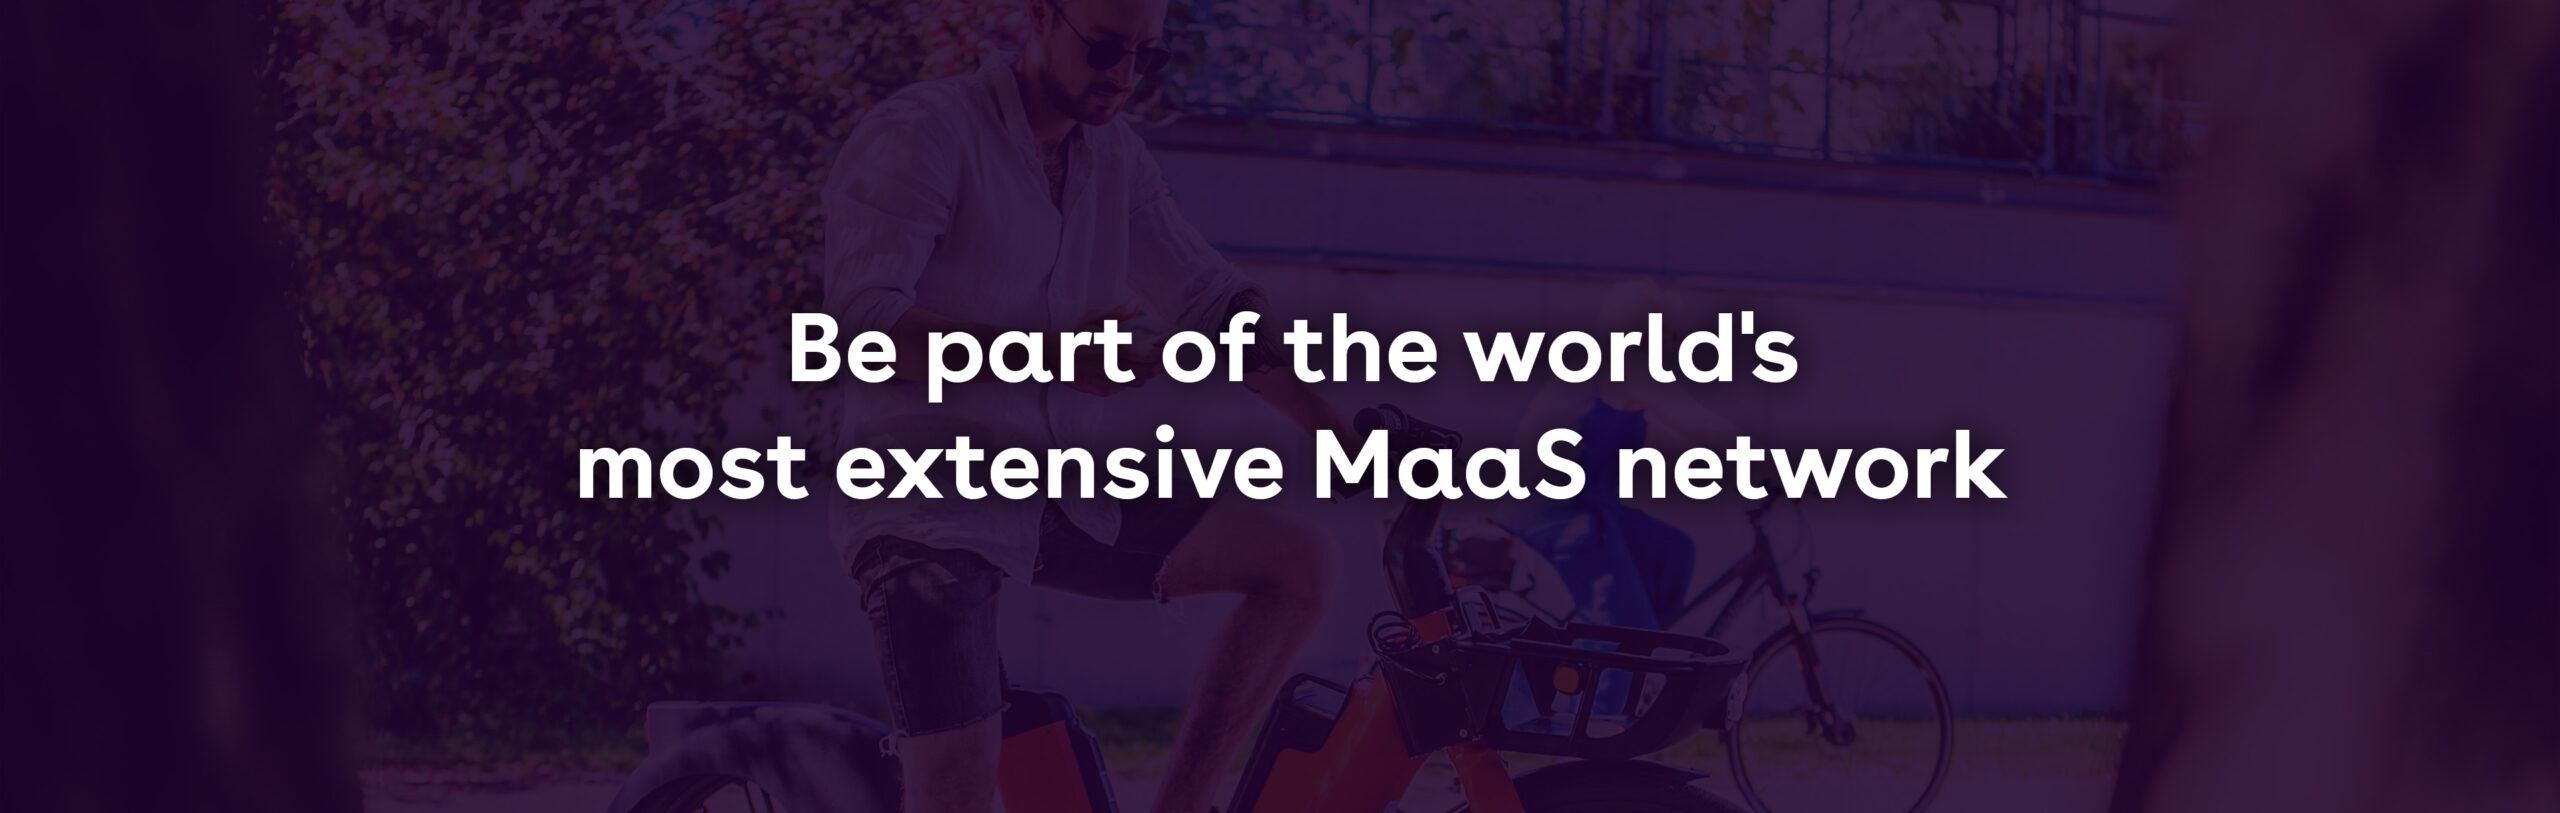 Be part of the world's most extensive MaaS network